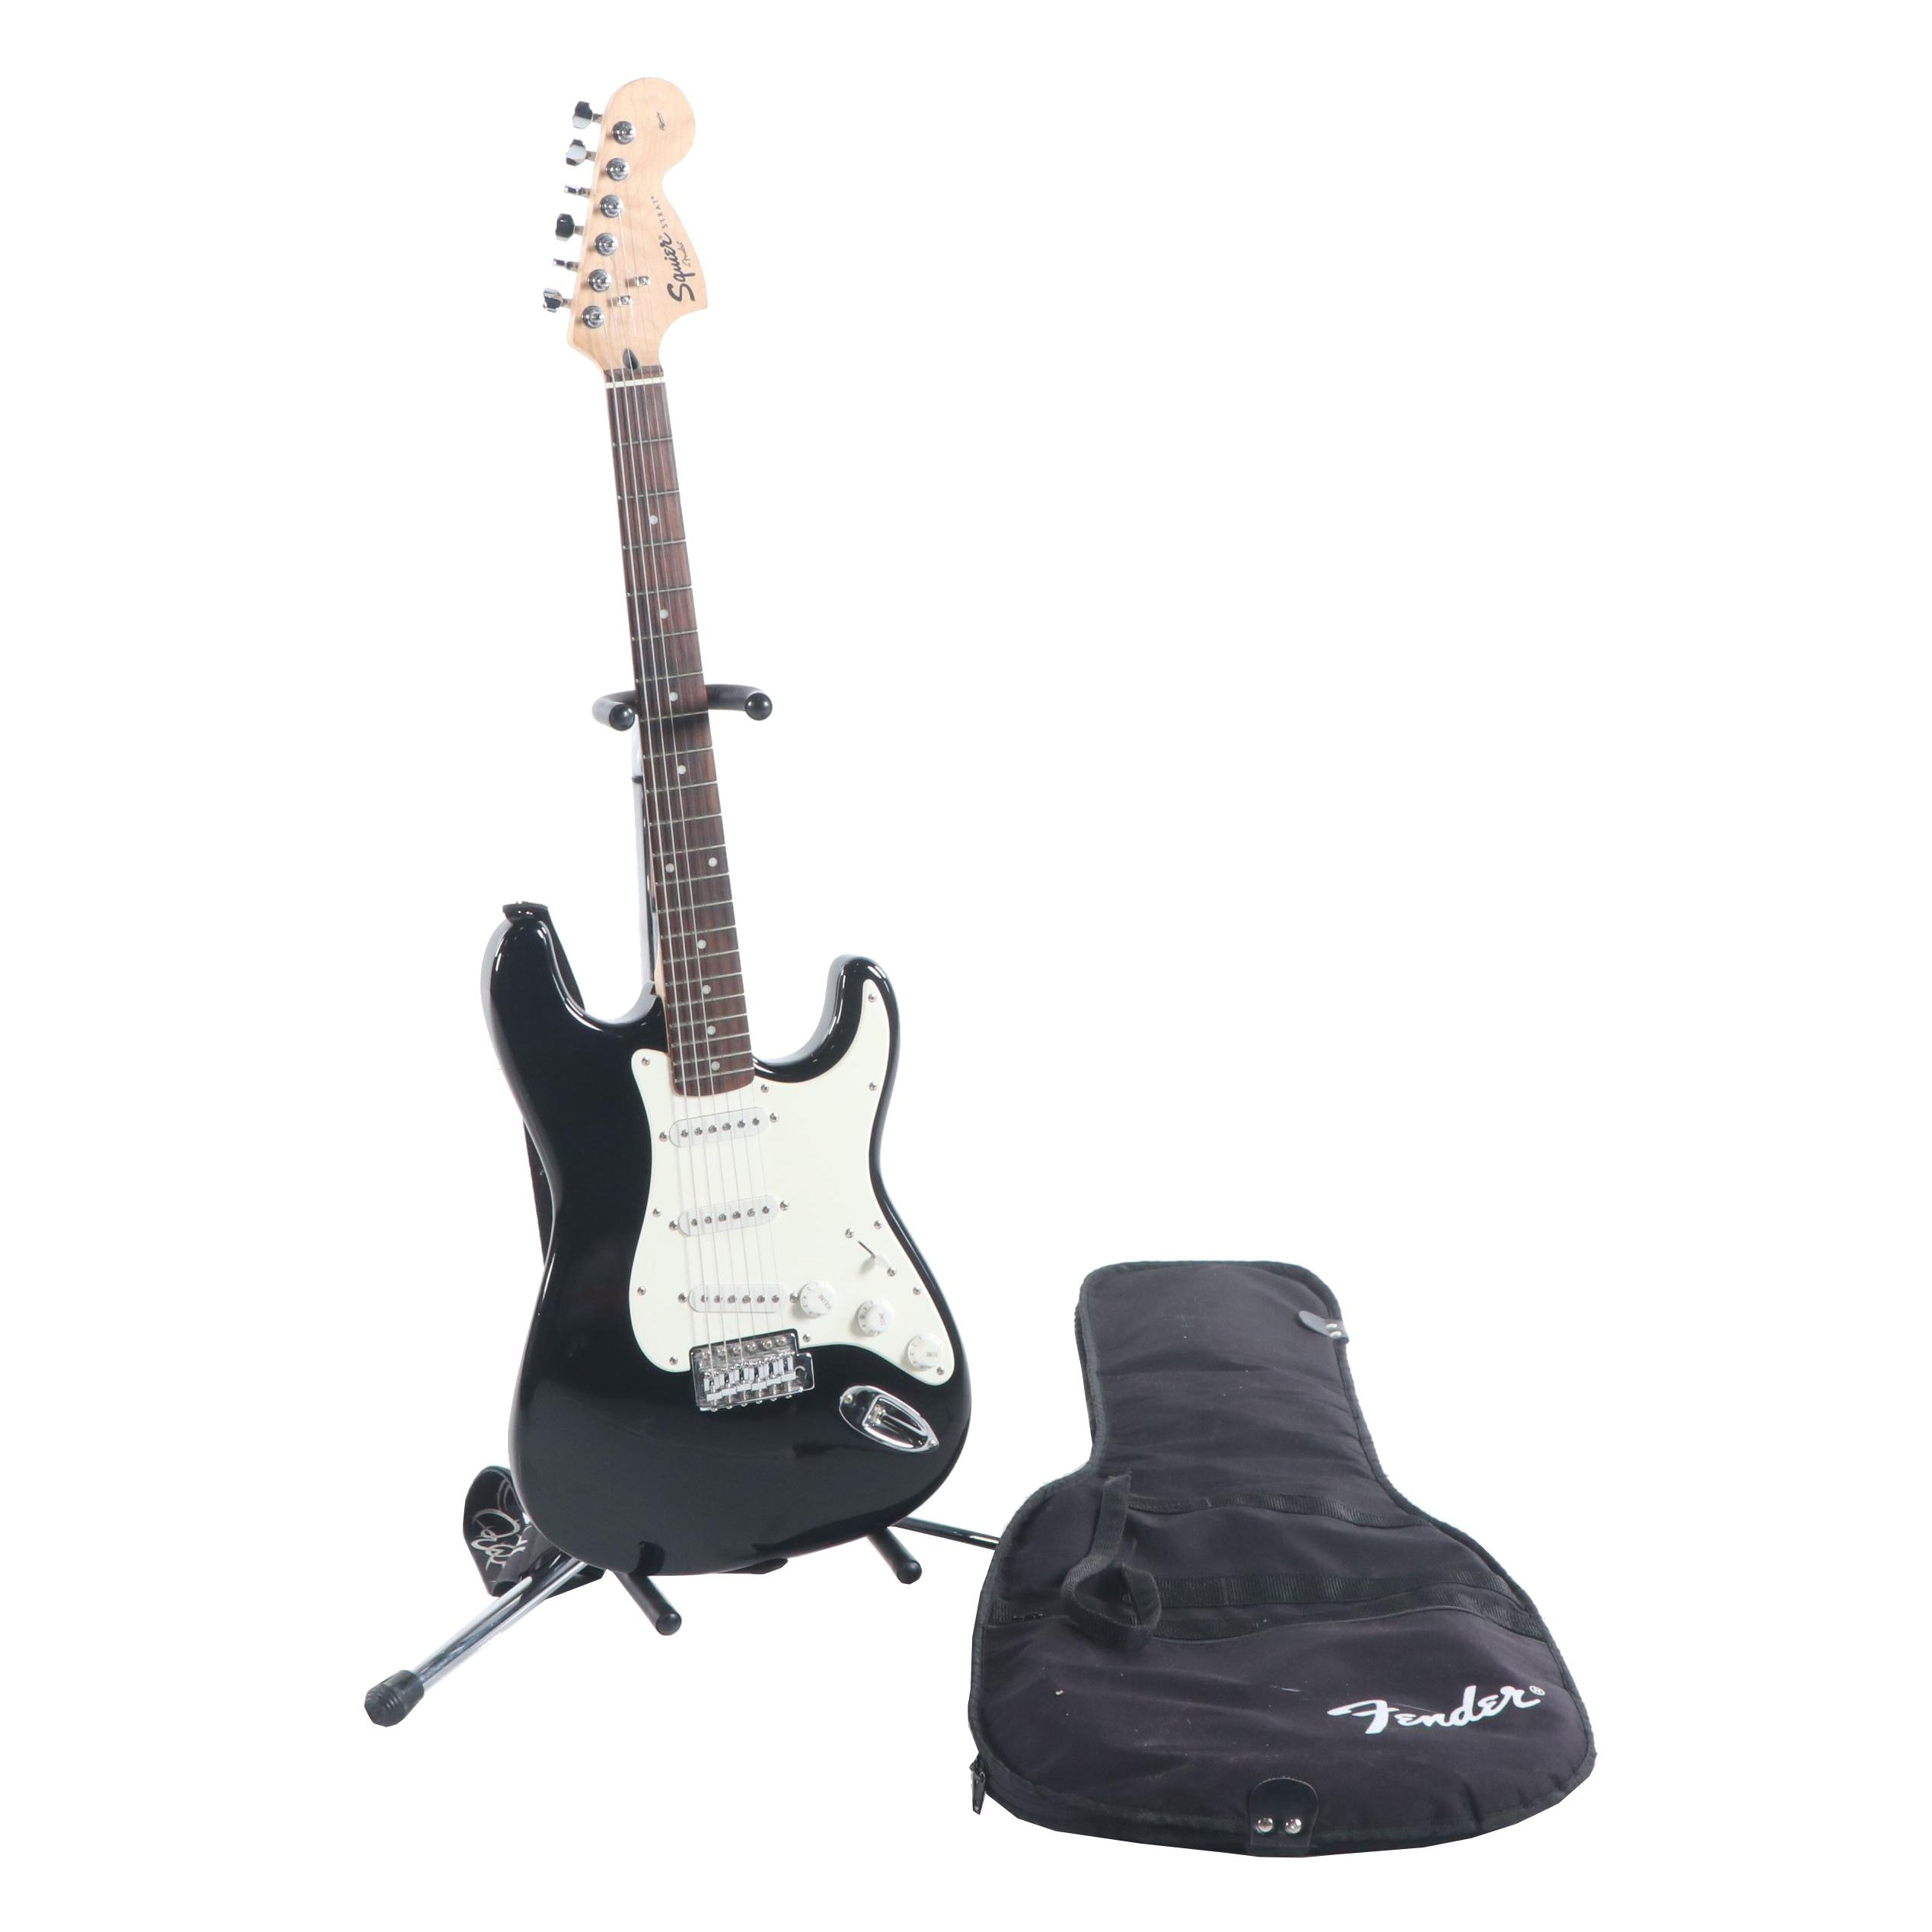 Fender Squier Strat Electric Guitar with Case and Stand